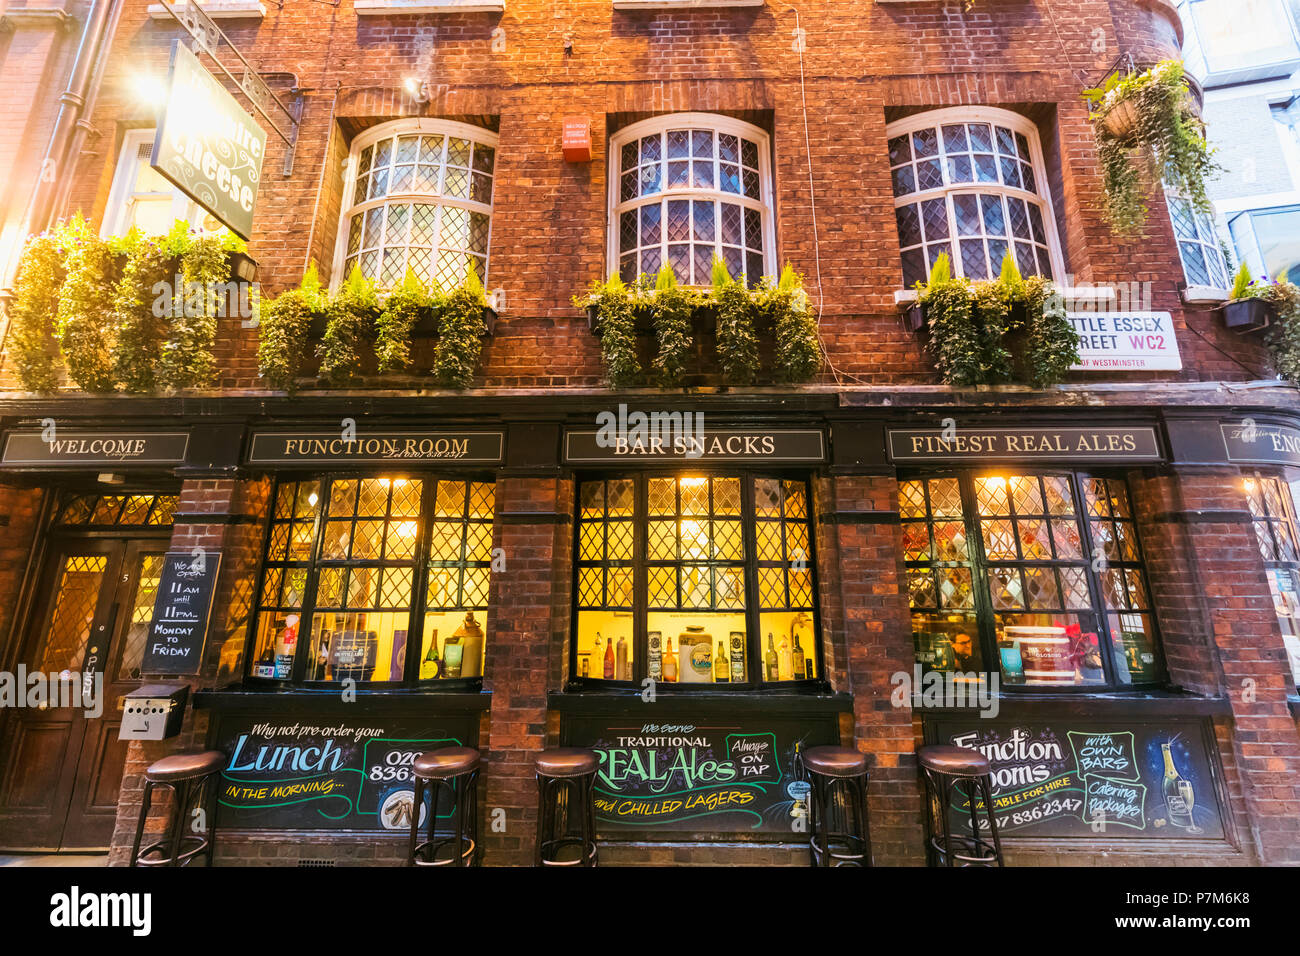 England, London, The City of London, The Cheshire Cheese Pub - Stock Image